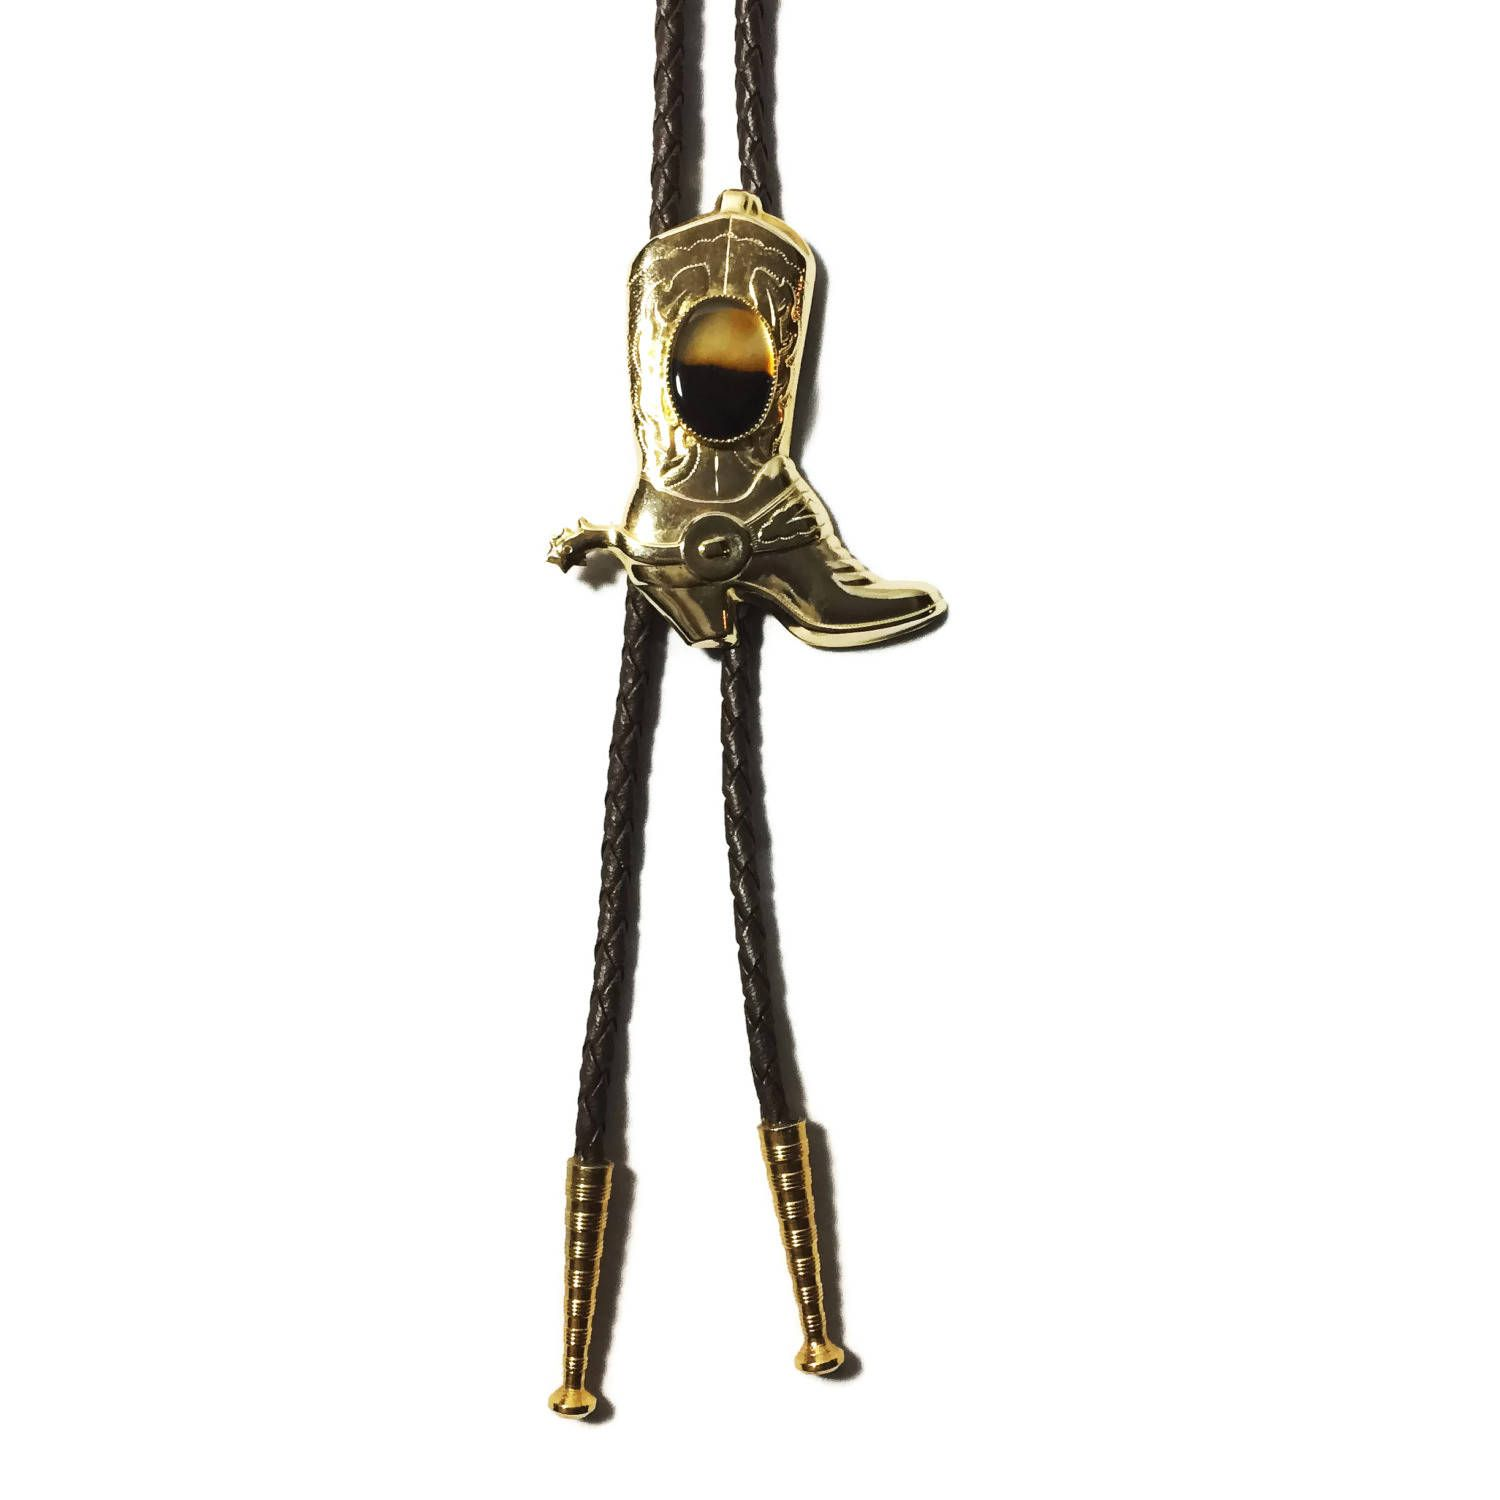 80s Cowboy Boot Bolo Tie, vintage Bolo ties, leather bolo tie, gold ...